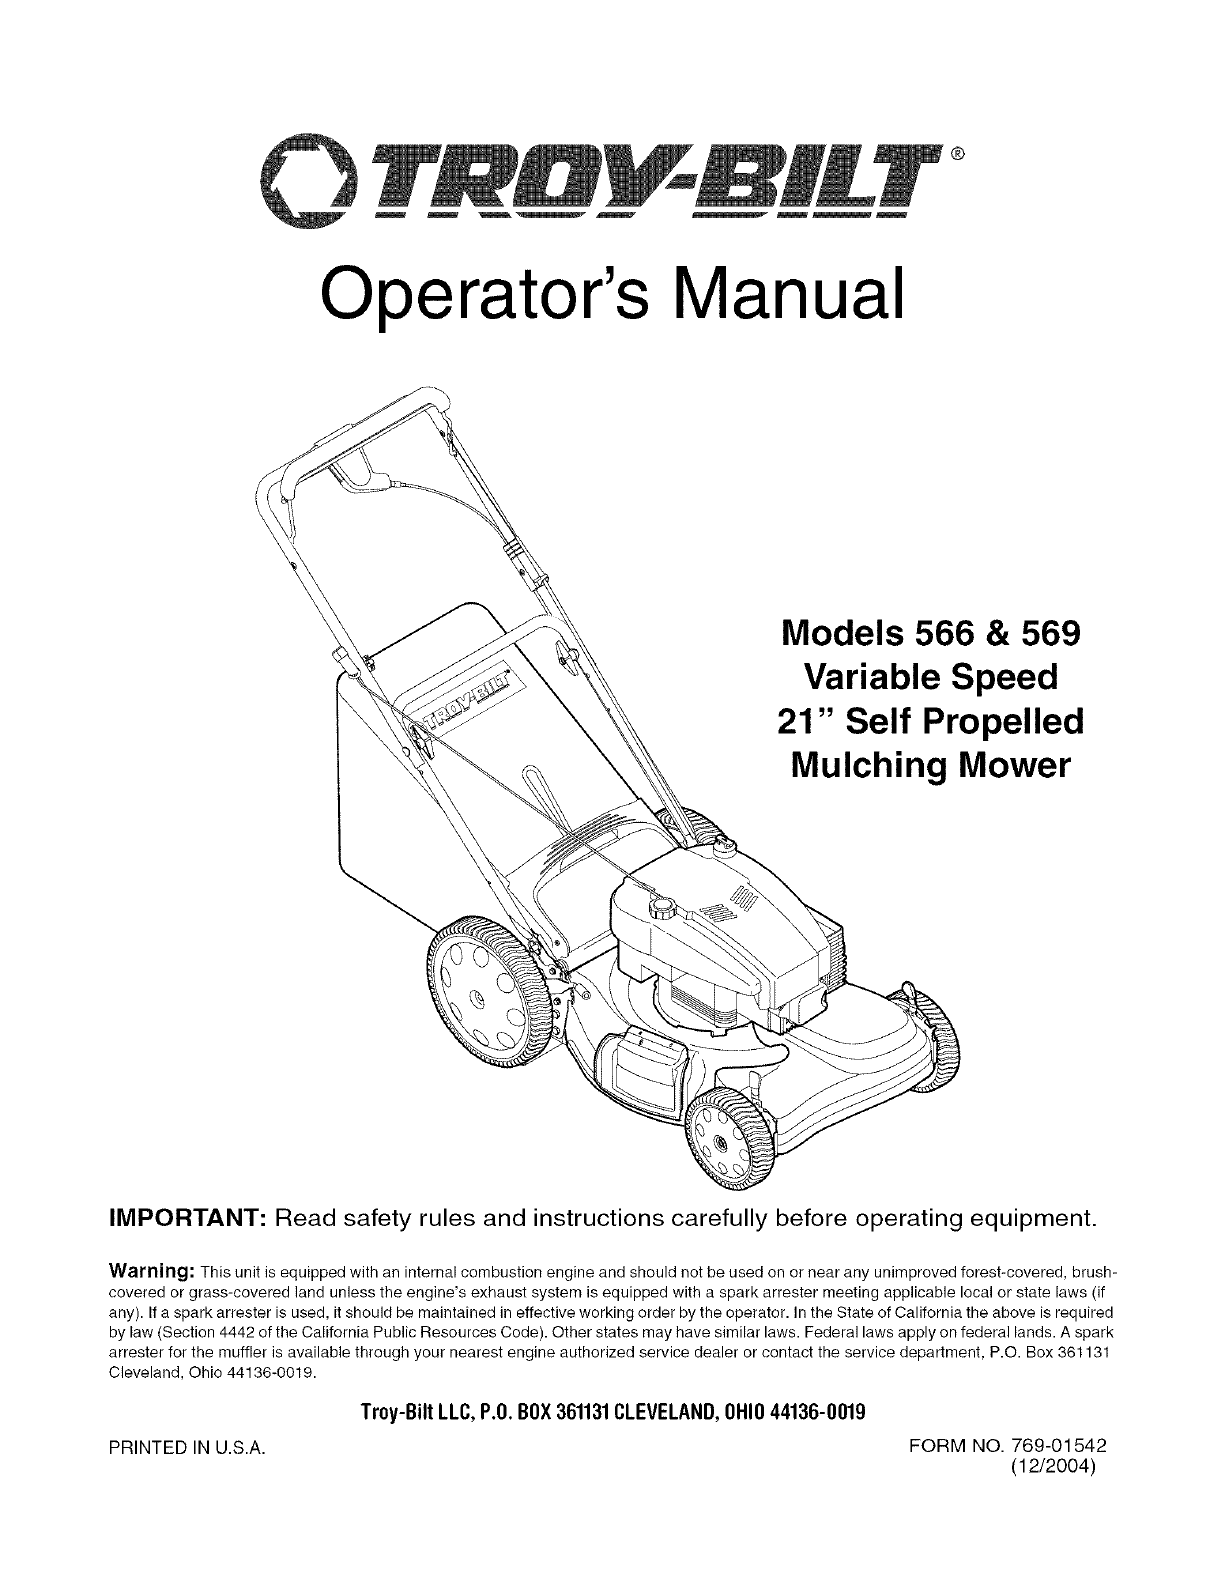 Troybilt 12AV566N711 User Manual LAWN MOWER Manuals And